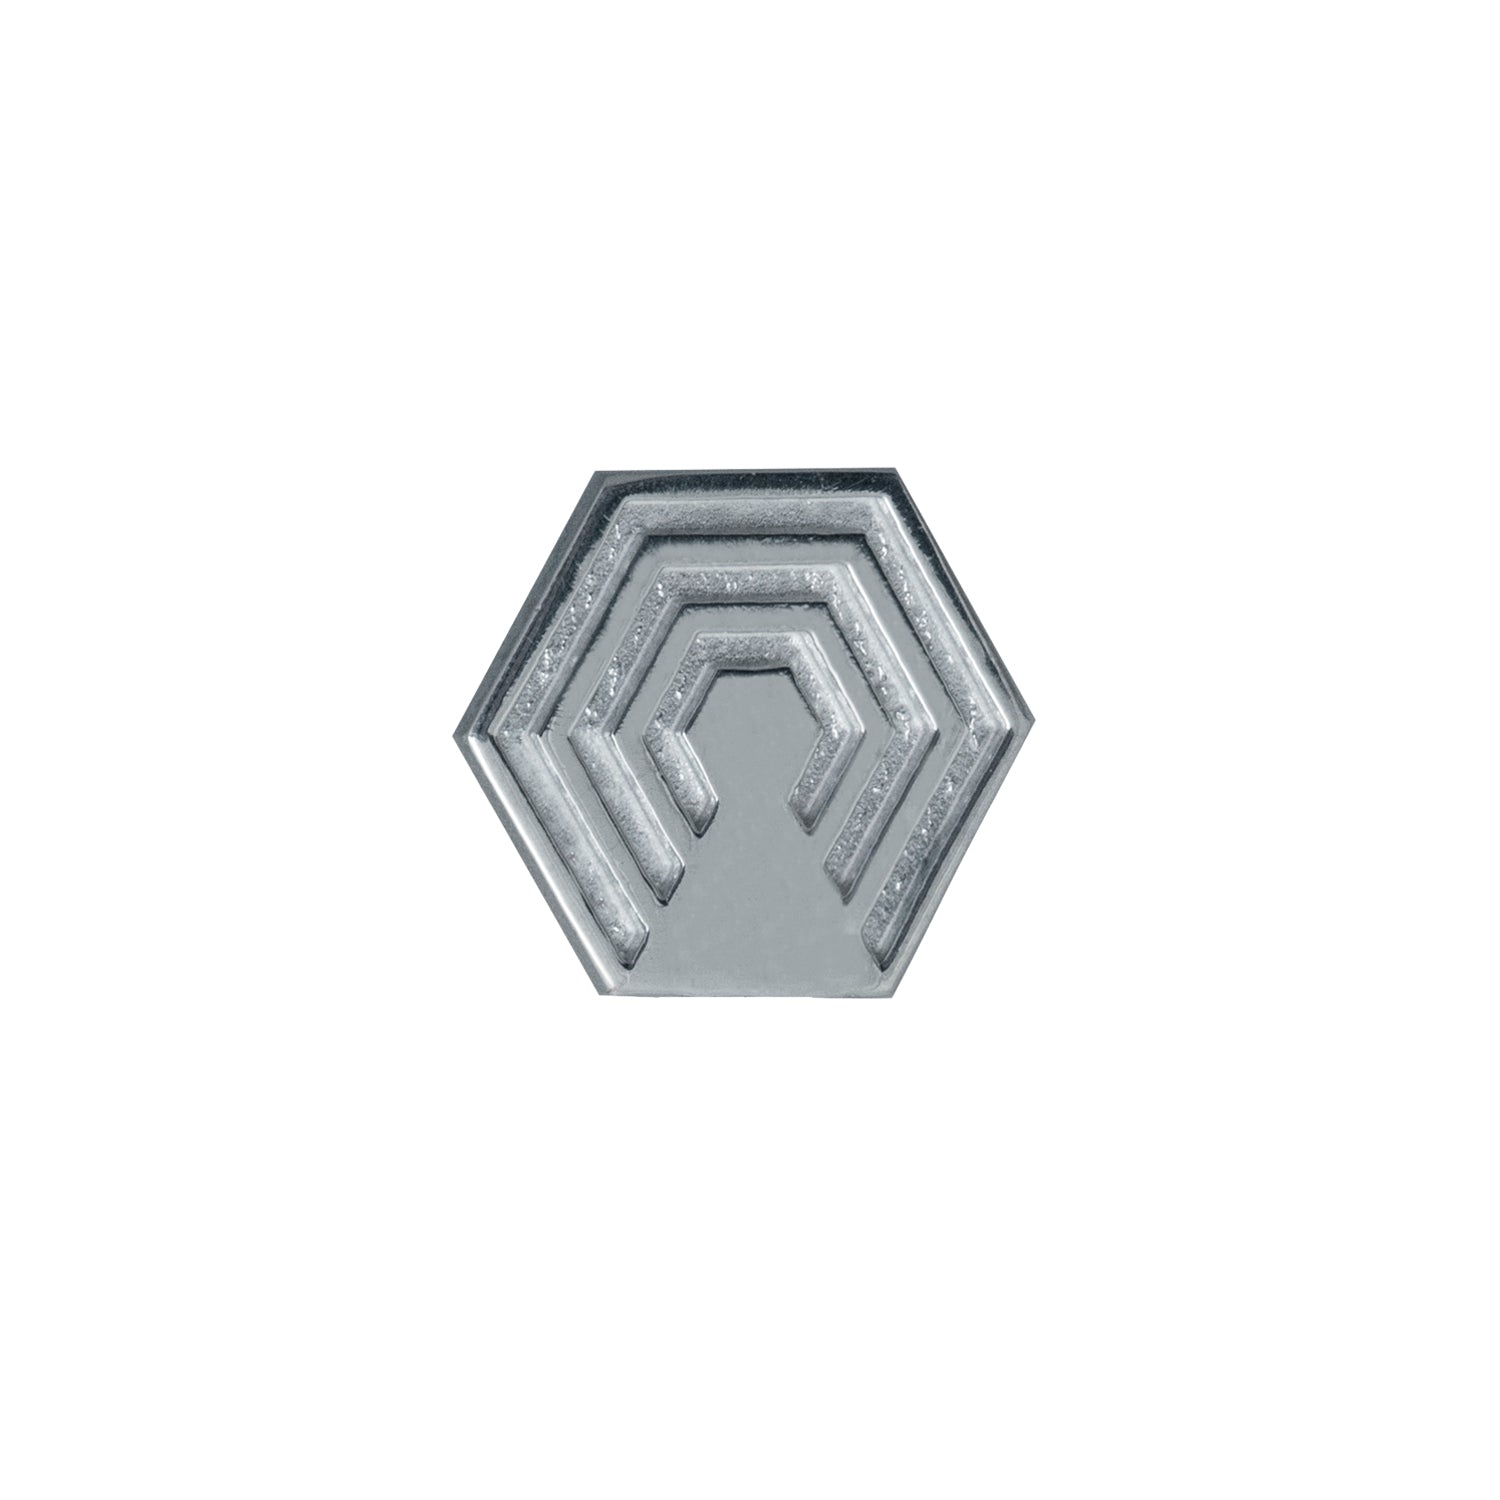 Hexagon Lapel Pin in sterling silver EOxLH